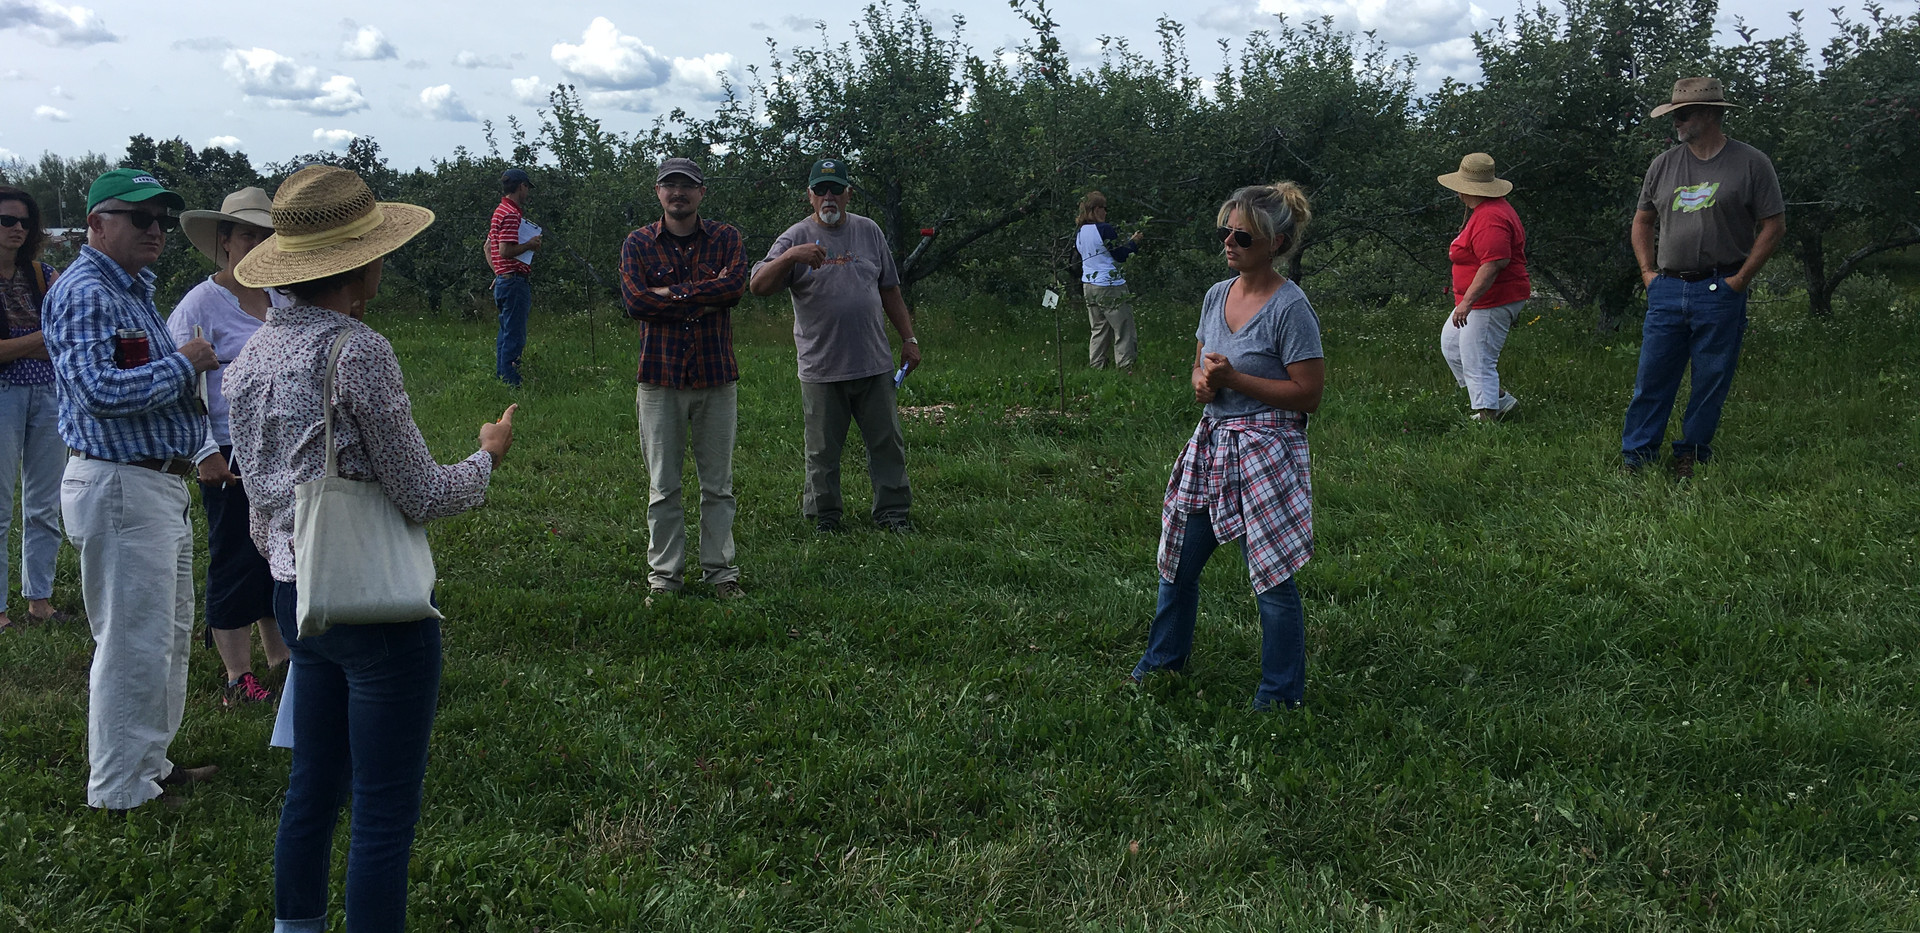 Lisa with other orchardists at her farm in Antigo, WI in August, 2019